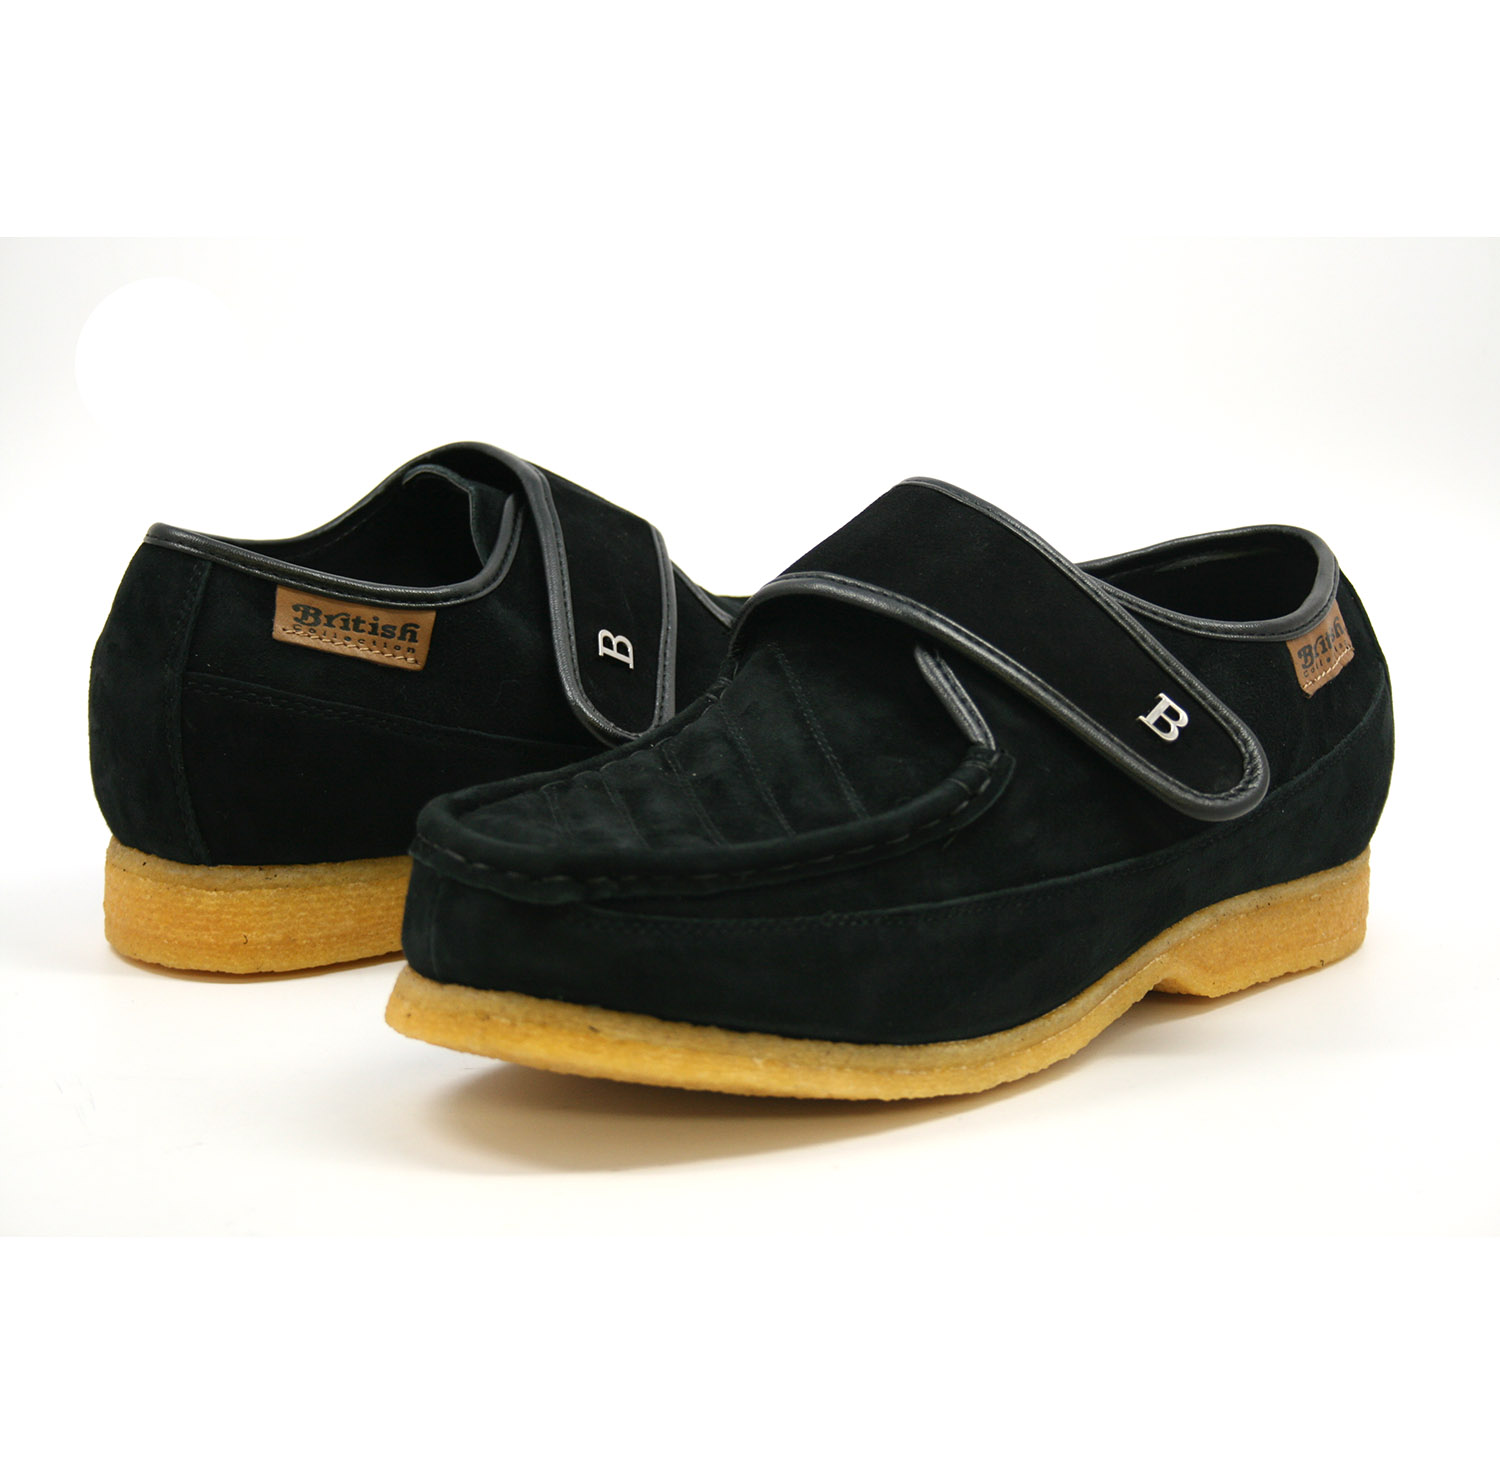 British Collection Royal Old School Slip On Black Suede  126-01  -  99.99   British  Walk ff5de79d7